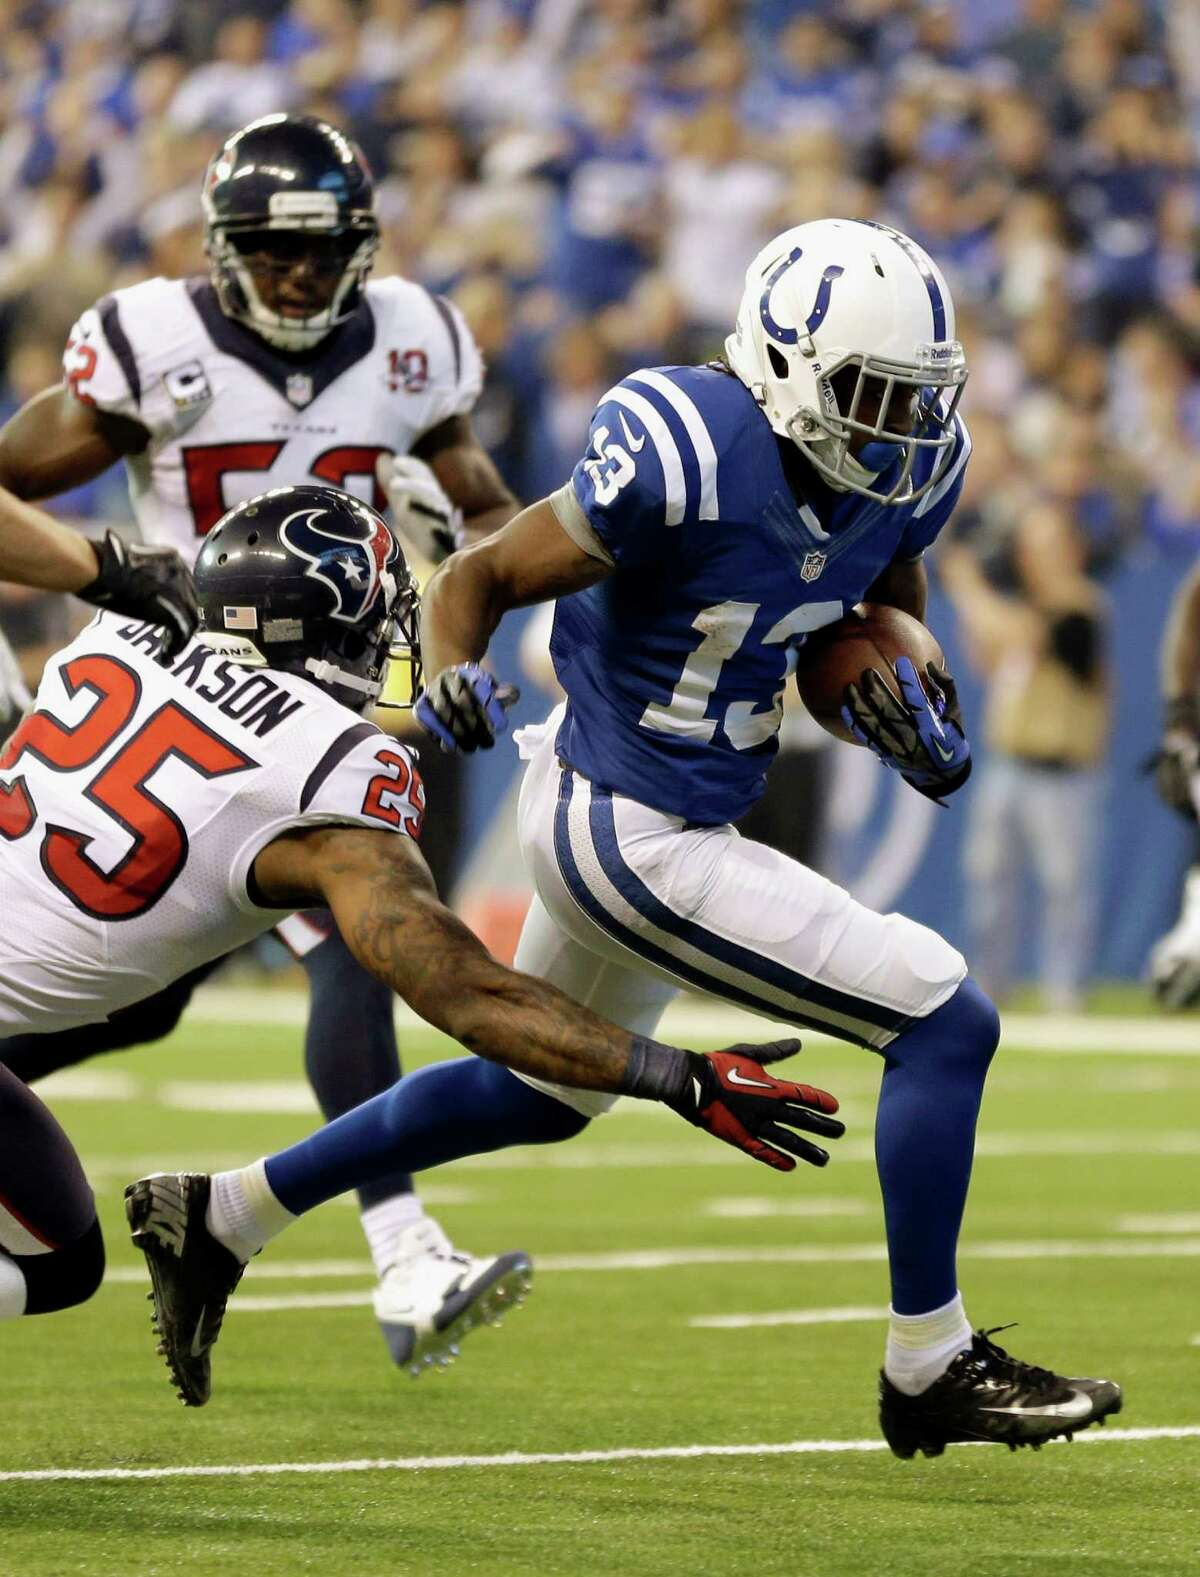 Houston Texans' Kareem Jackson (25) tackles Indianapolis Colts' T.Y. Hilton (13) during the first half of an NFL football game, Sunday, Dec. 30, 2012, in Indianapolis. (AP Photo/Michael Conroy)